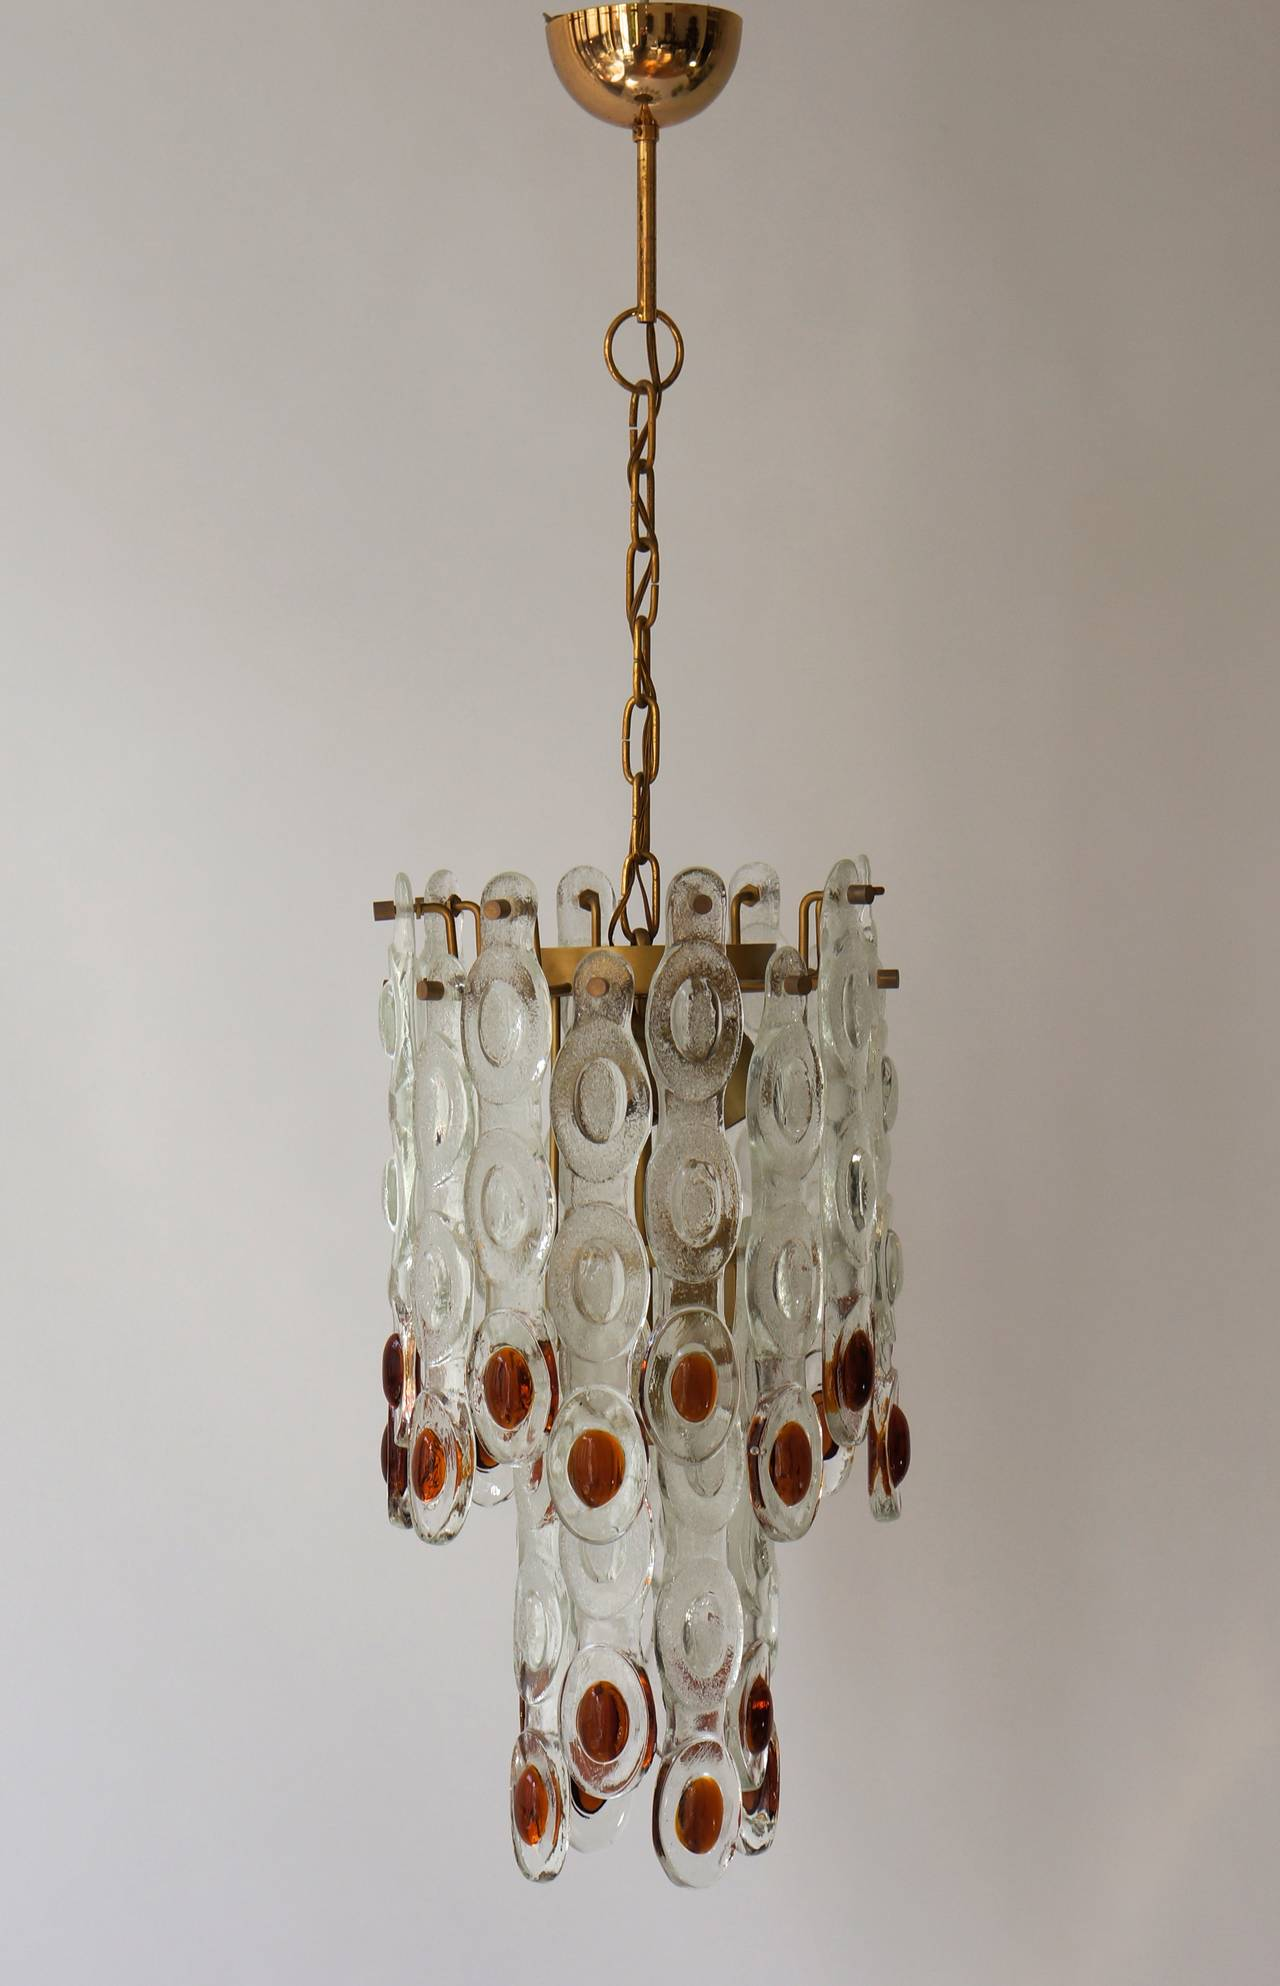 Amber and Clear Murano Glass Chandelier Attributed to Mazzega 2